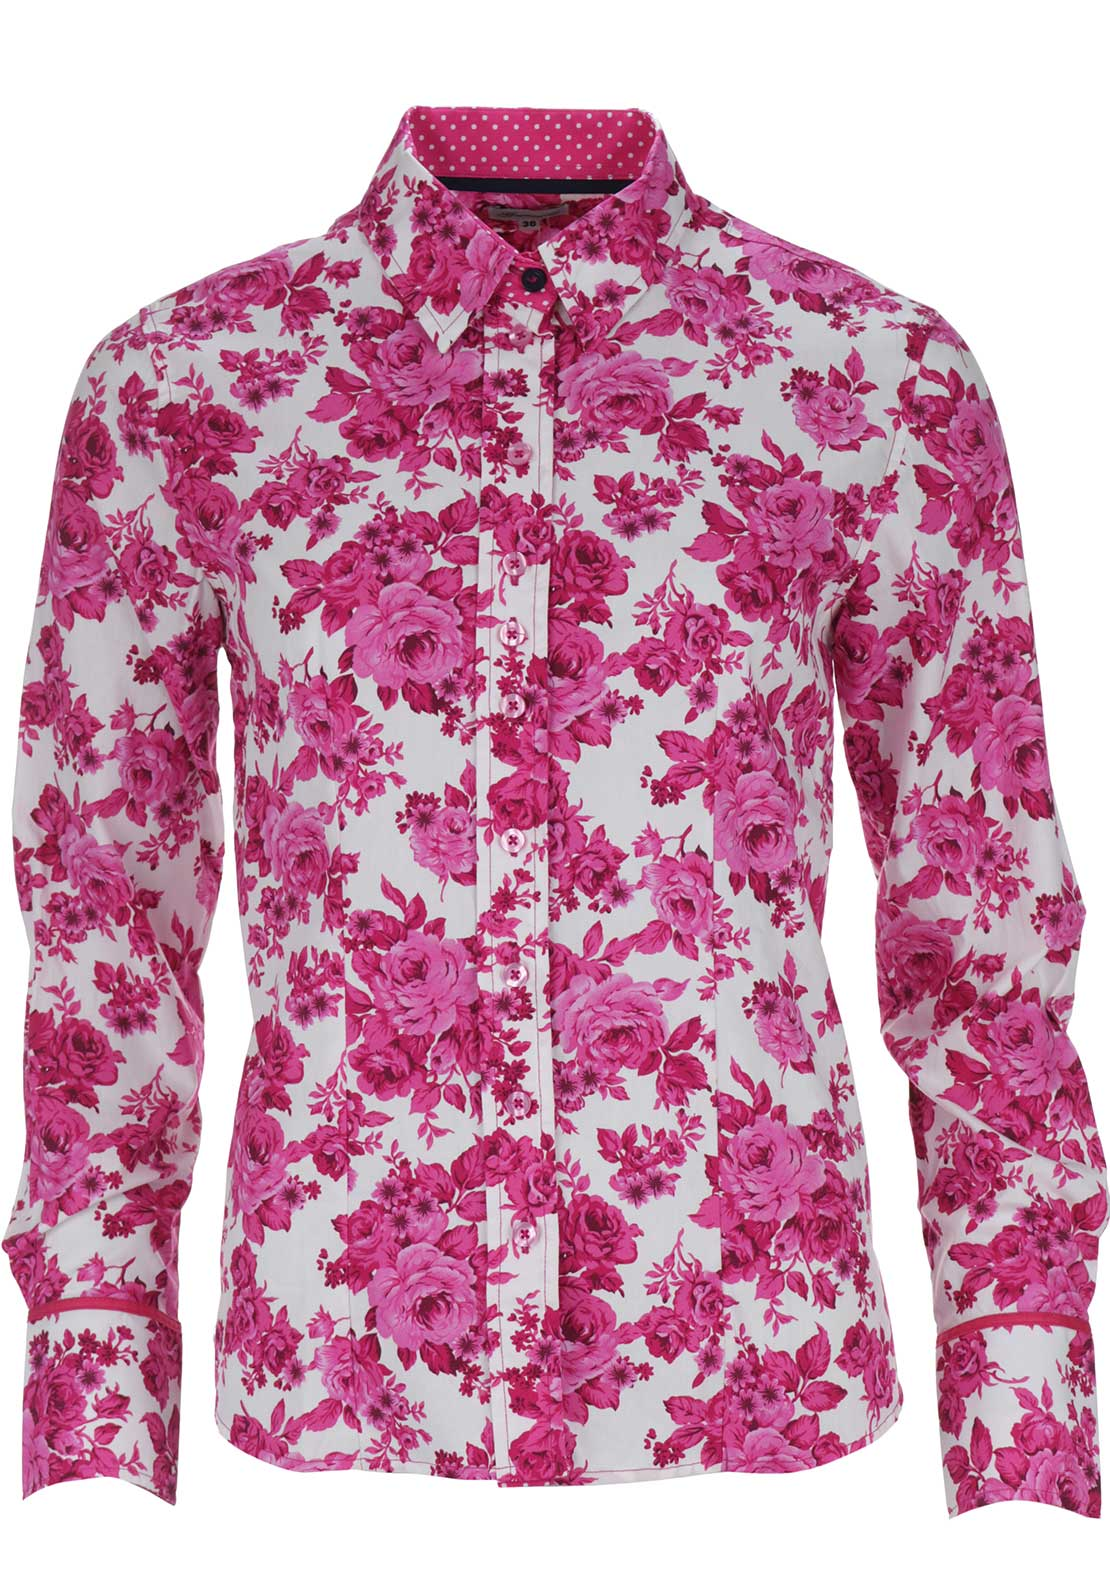 Grenouille Rose Print Long Sleeve Blouse, Pink